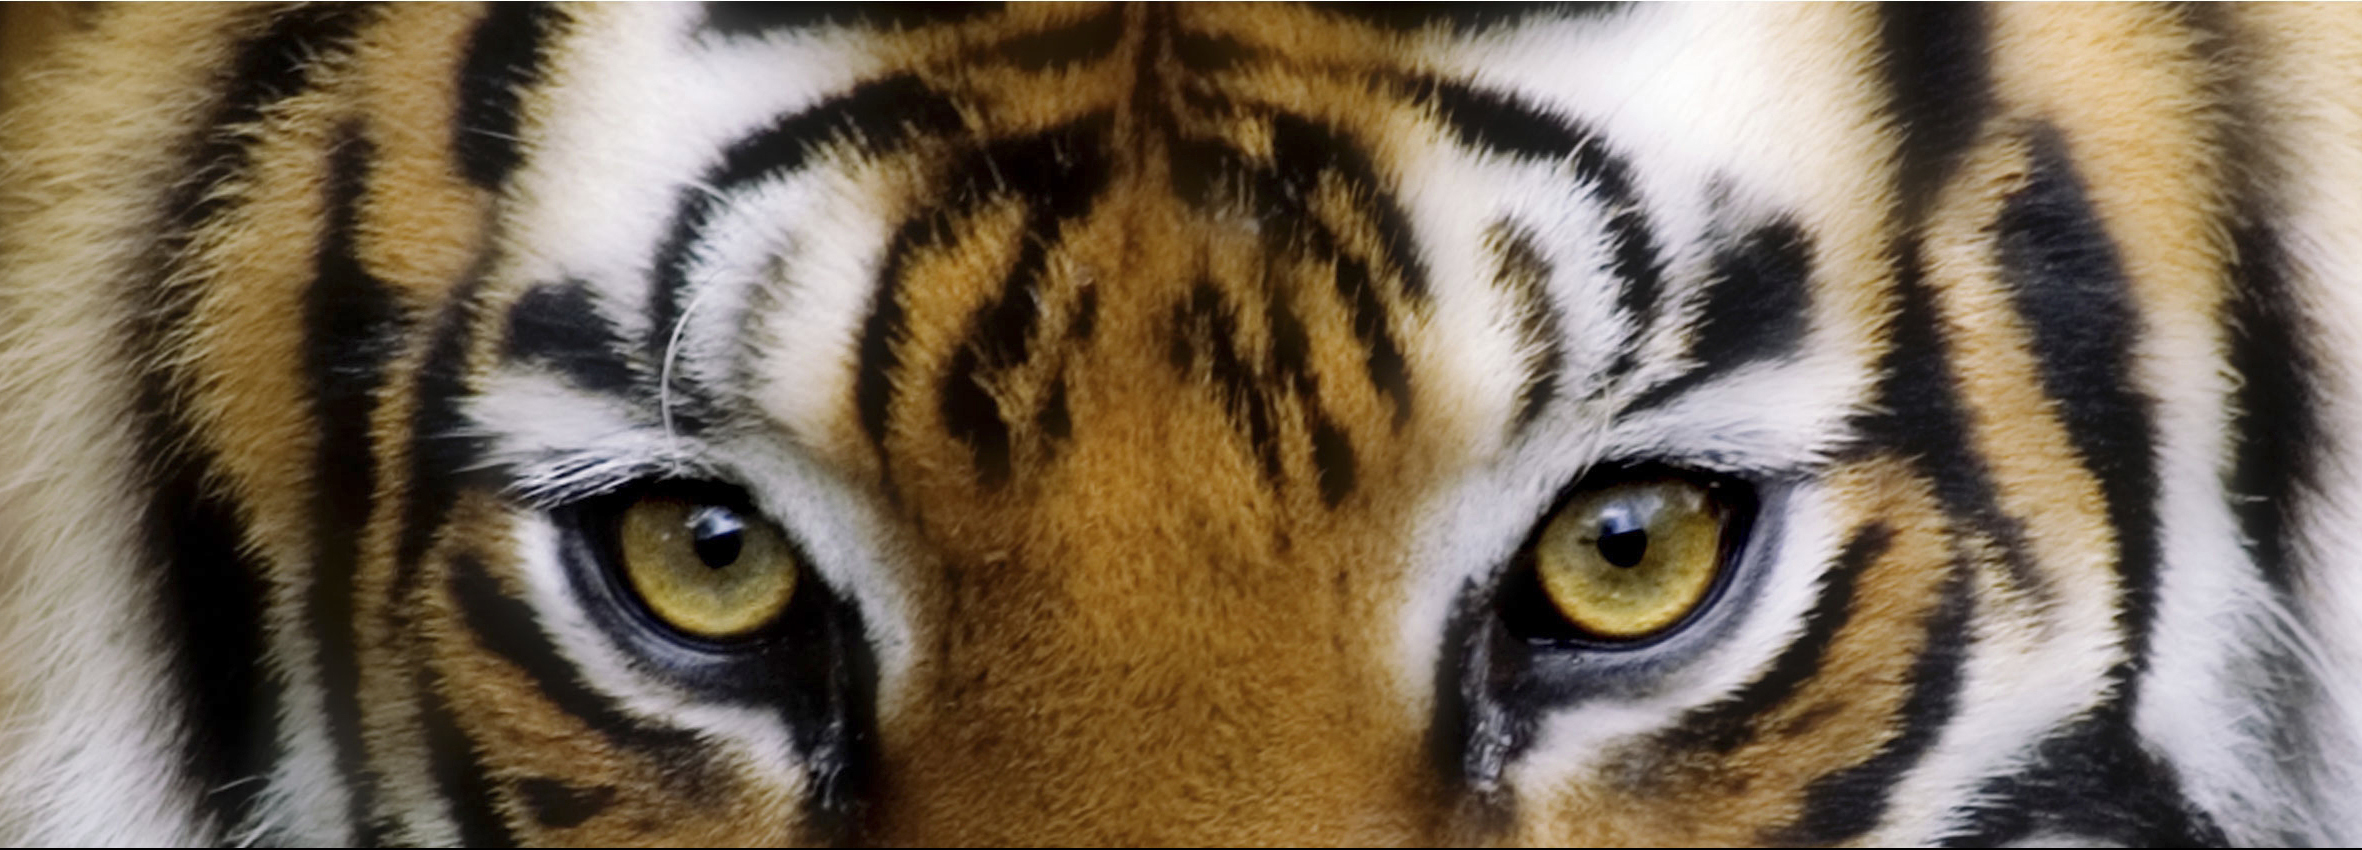 Close-up-of-tigers-face-India-shutterstock_13163569